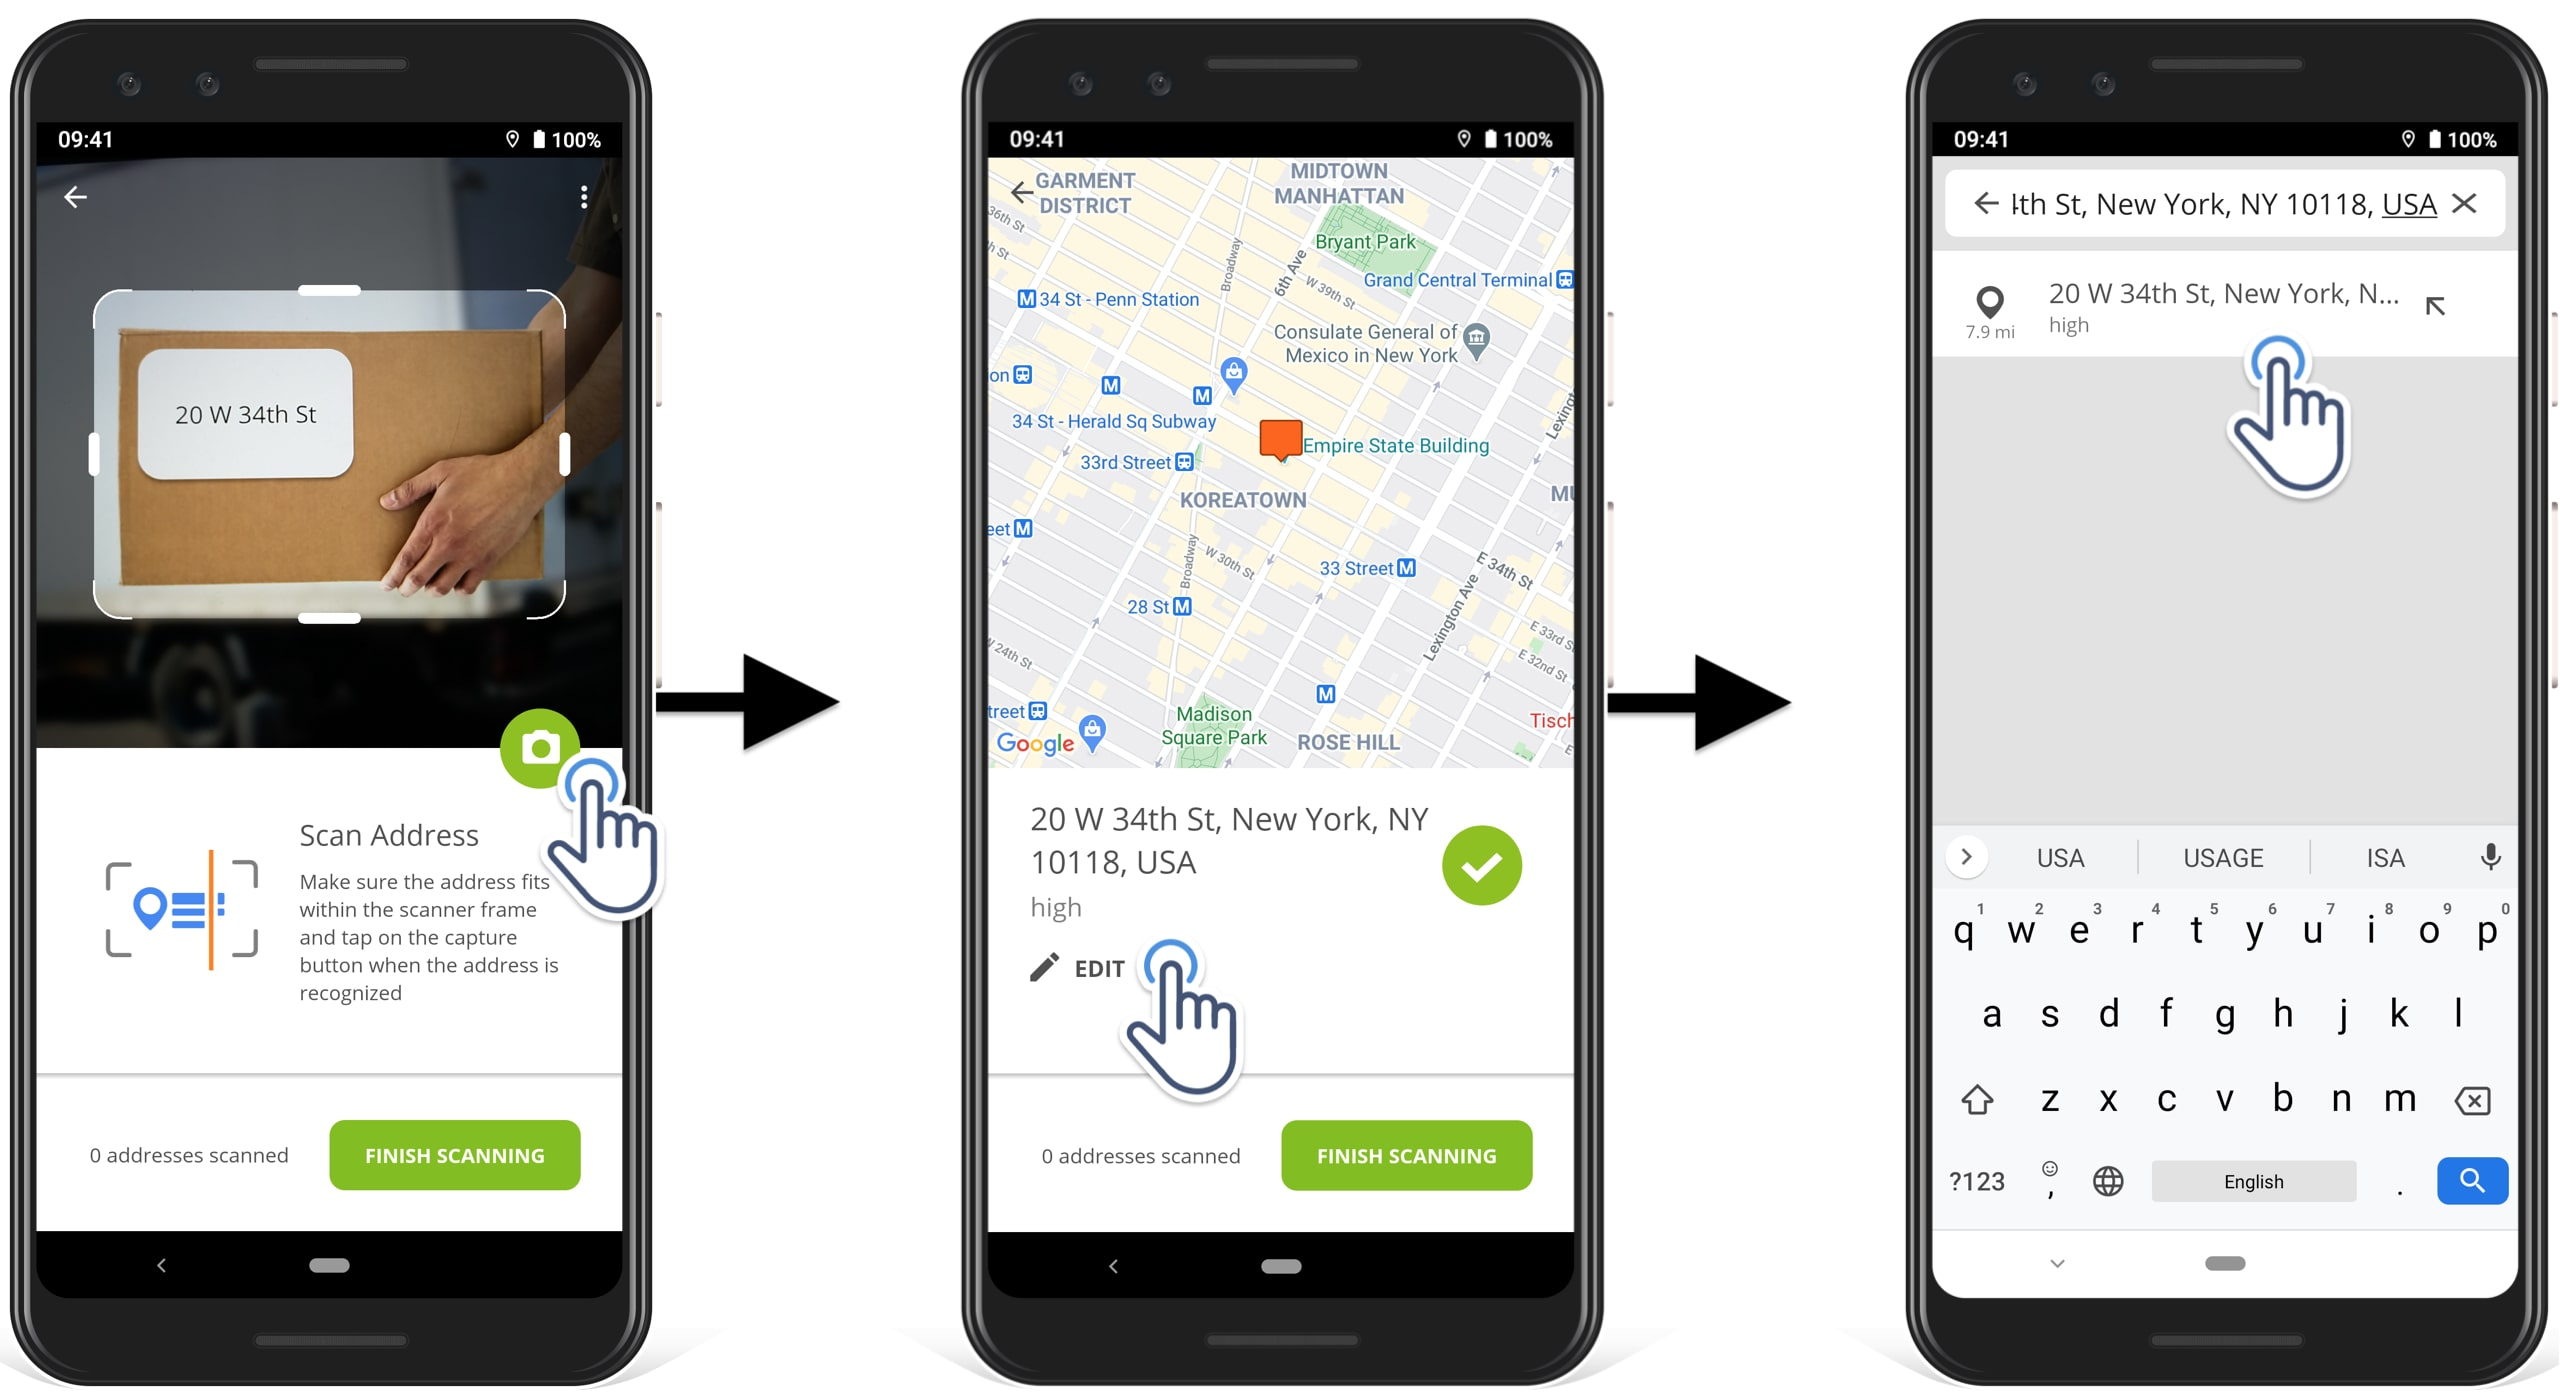 how to edit a scanned address in Route4Me delivery route planner app